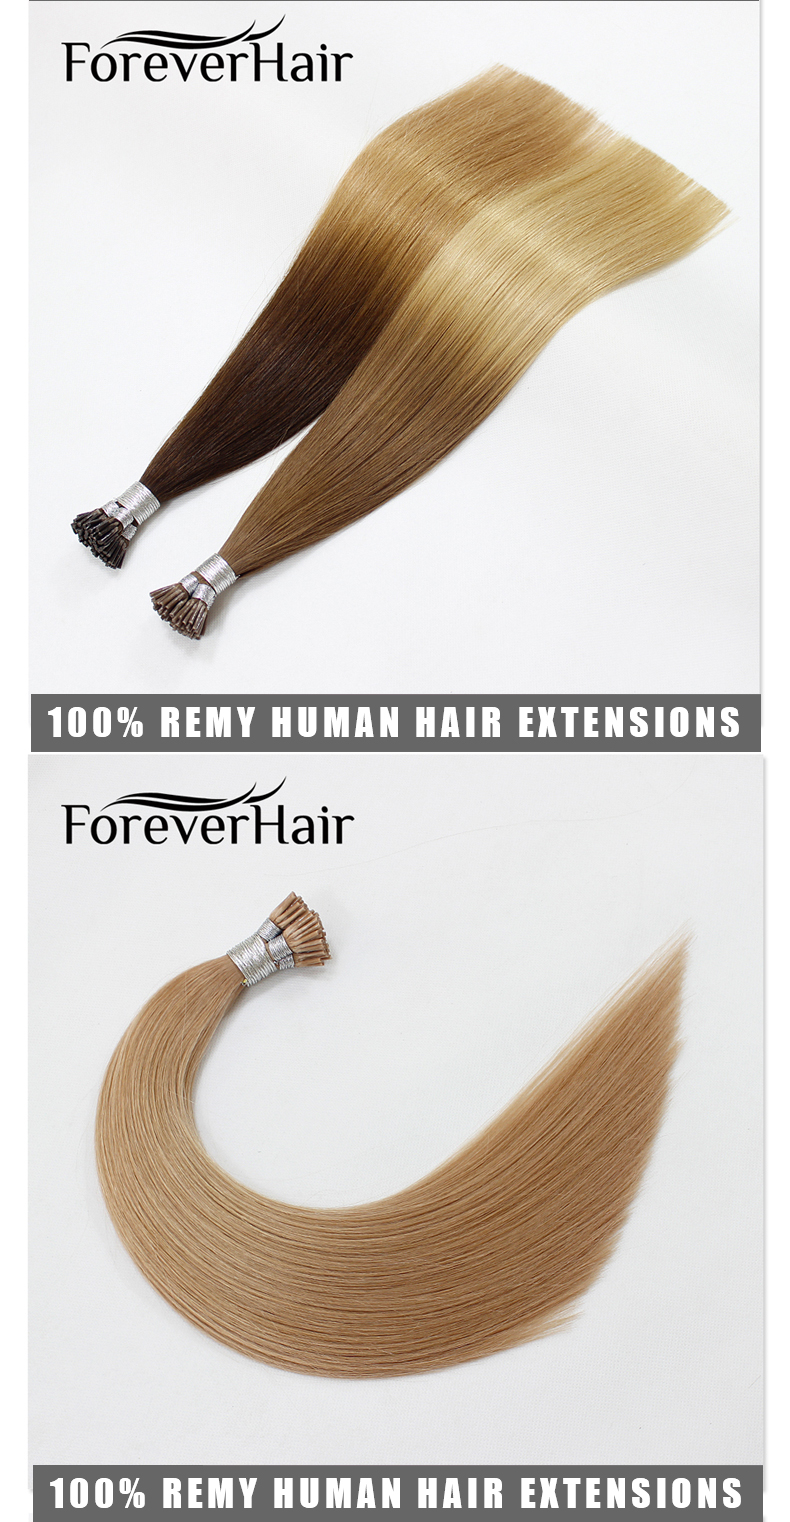 Forever high quality 100 real remy human blonde # 613 / 18 double drawn 2g strands i tip hair extensions